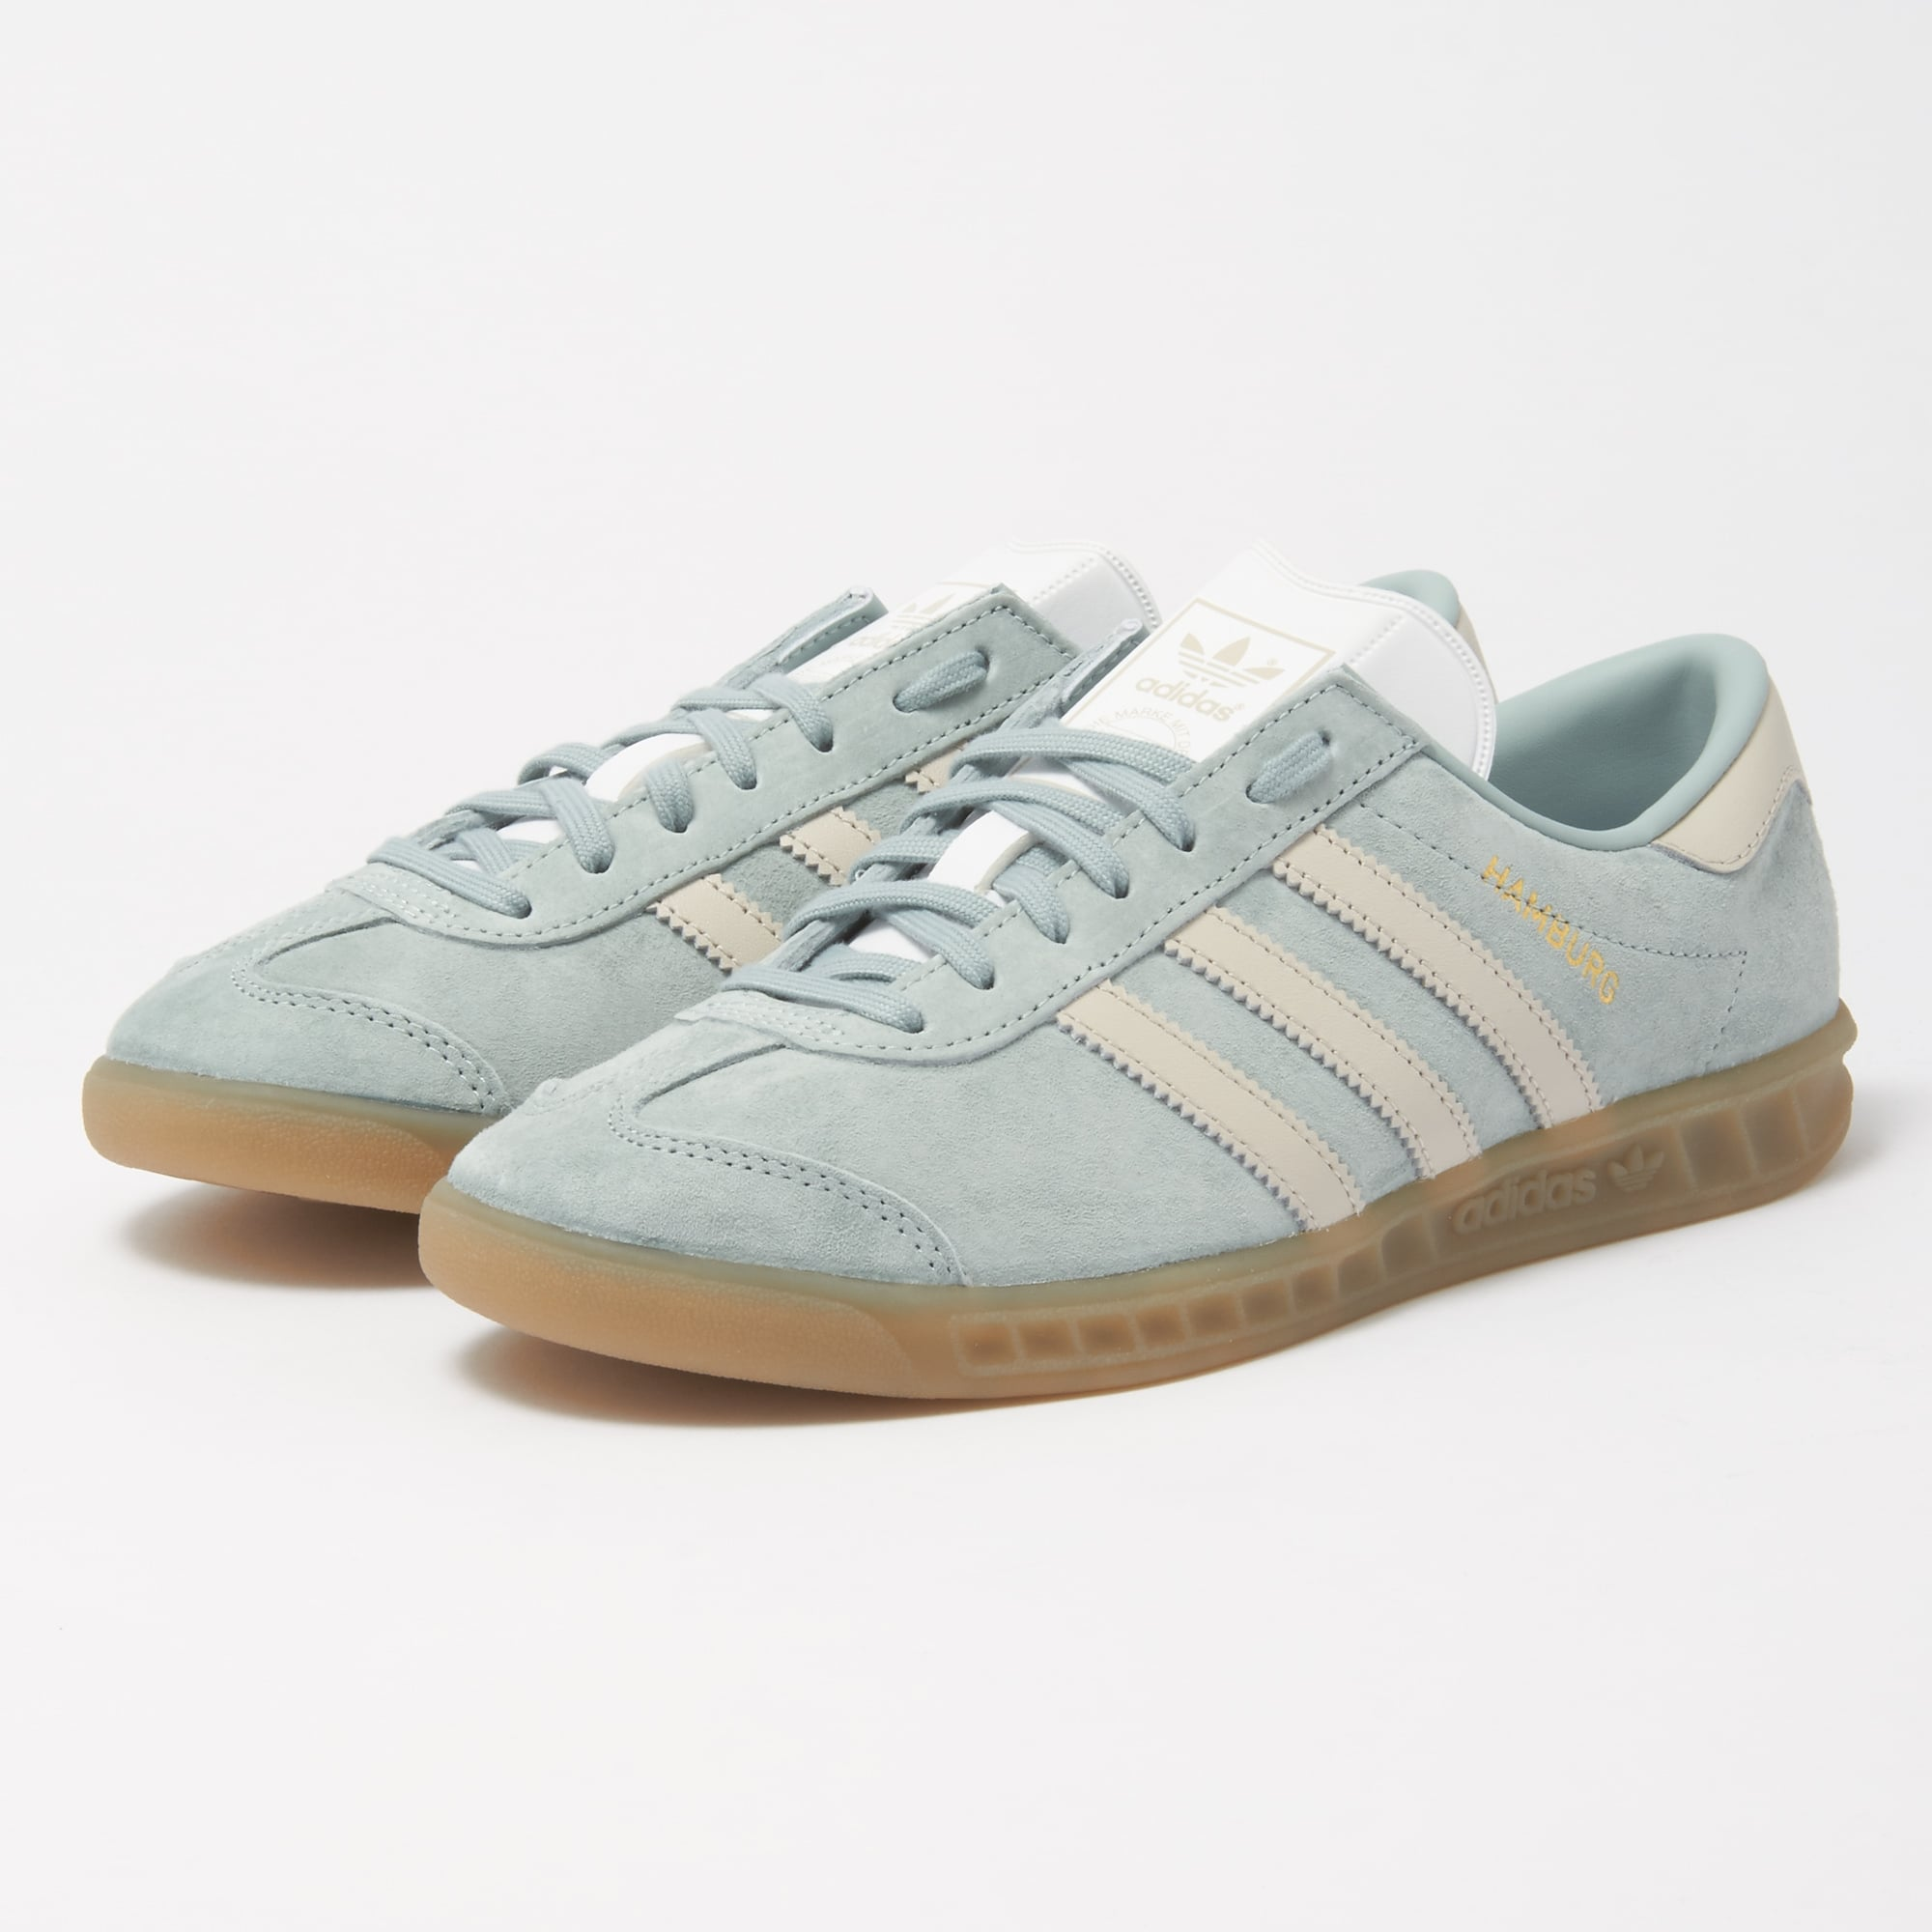 estrecho Adivinar idioma  Adidas Tactile Green Hamburg W Trainers | BY9674 | Stuarts London